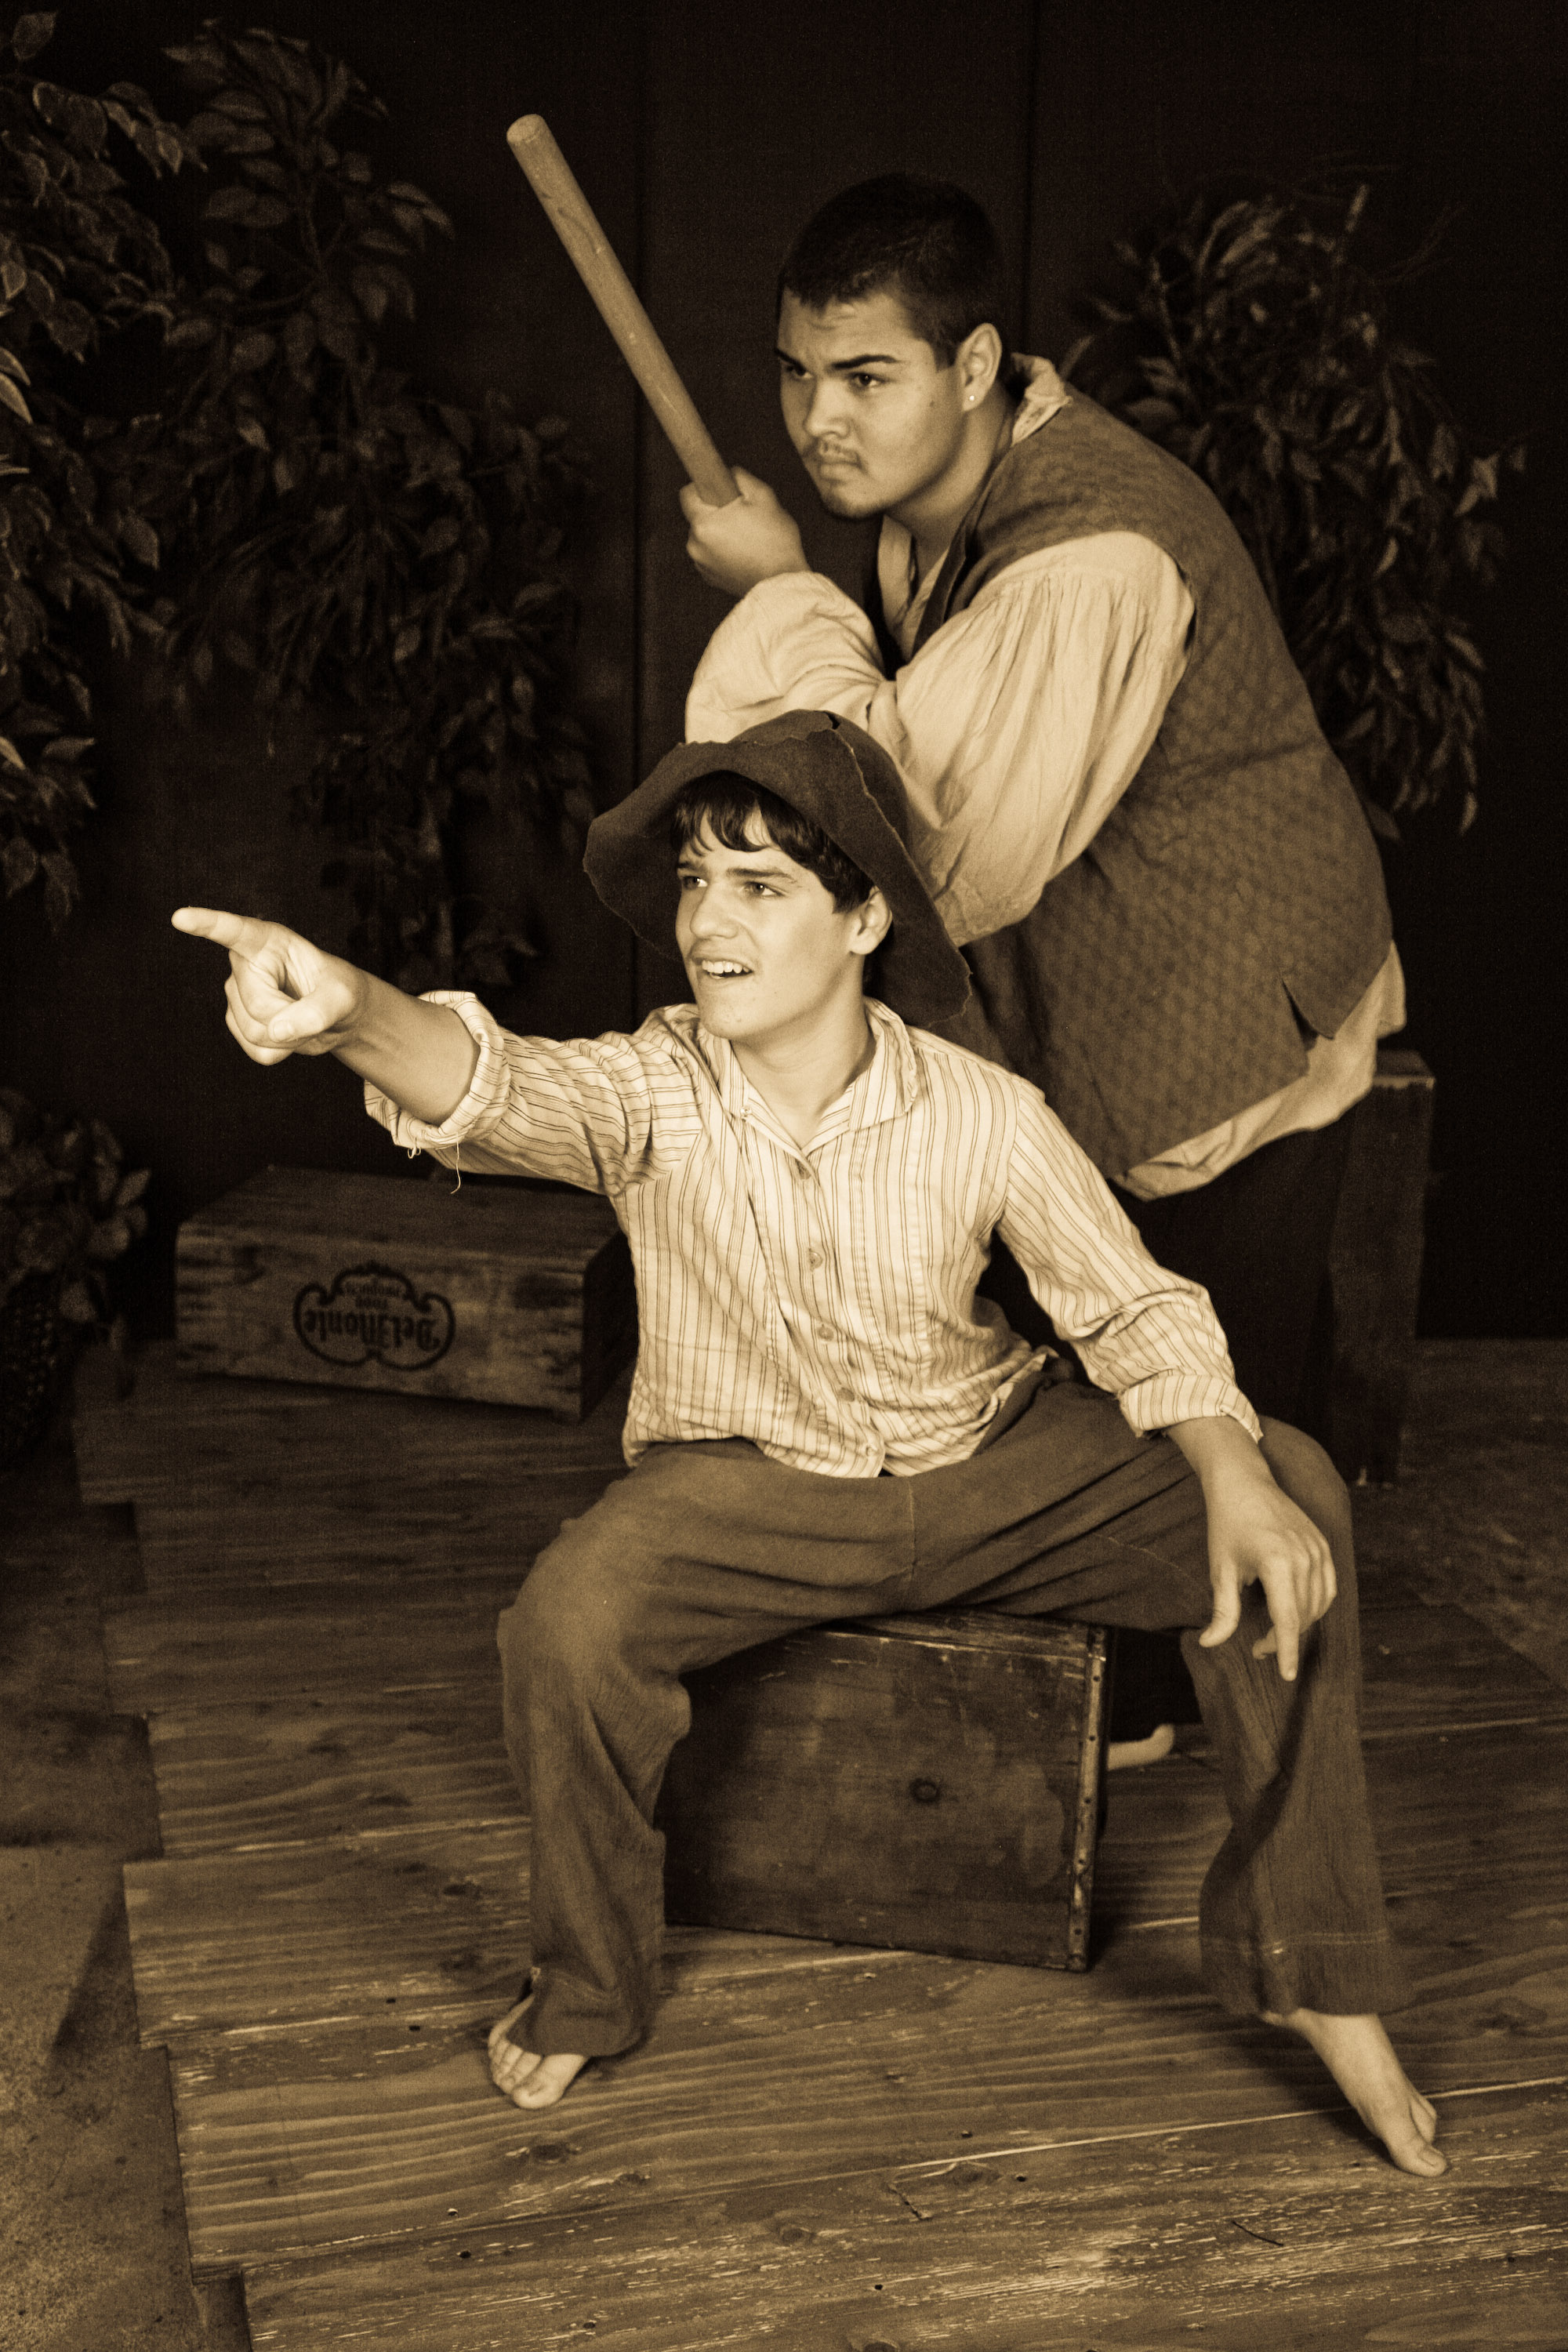 the river in the adventures of huckleberry finn Symbolism of the raft and river in the adventures of huckleberry finn i chose to examine the symbolism of the raft and river, and the journey huck and jim take on it in mark twain's the adventure of huckleberry finn.